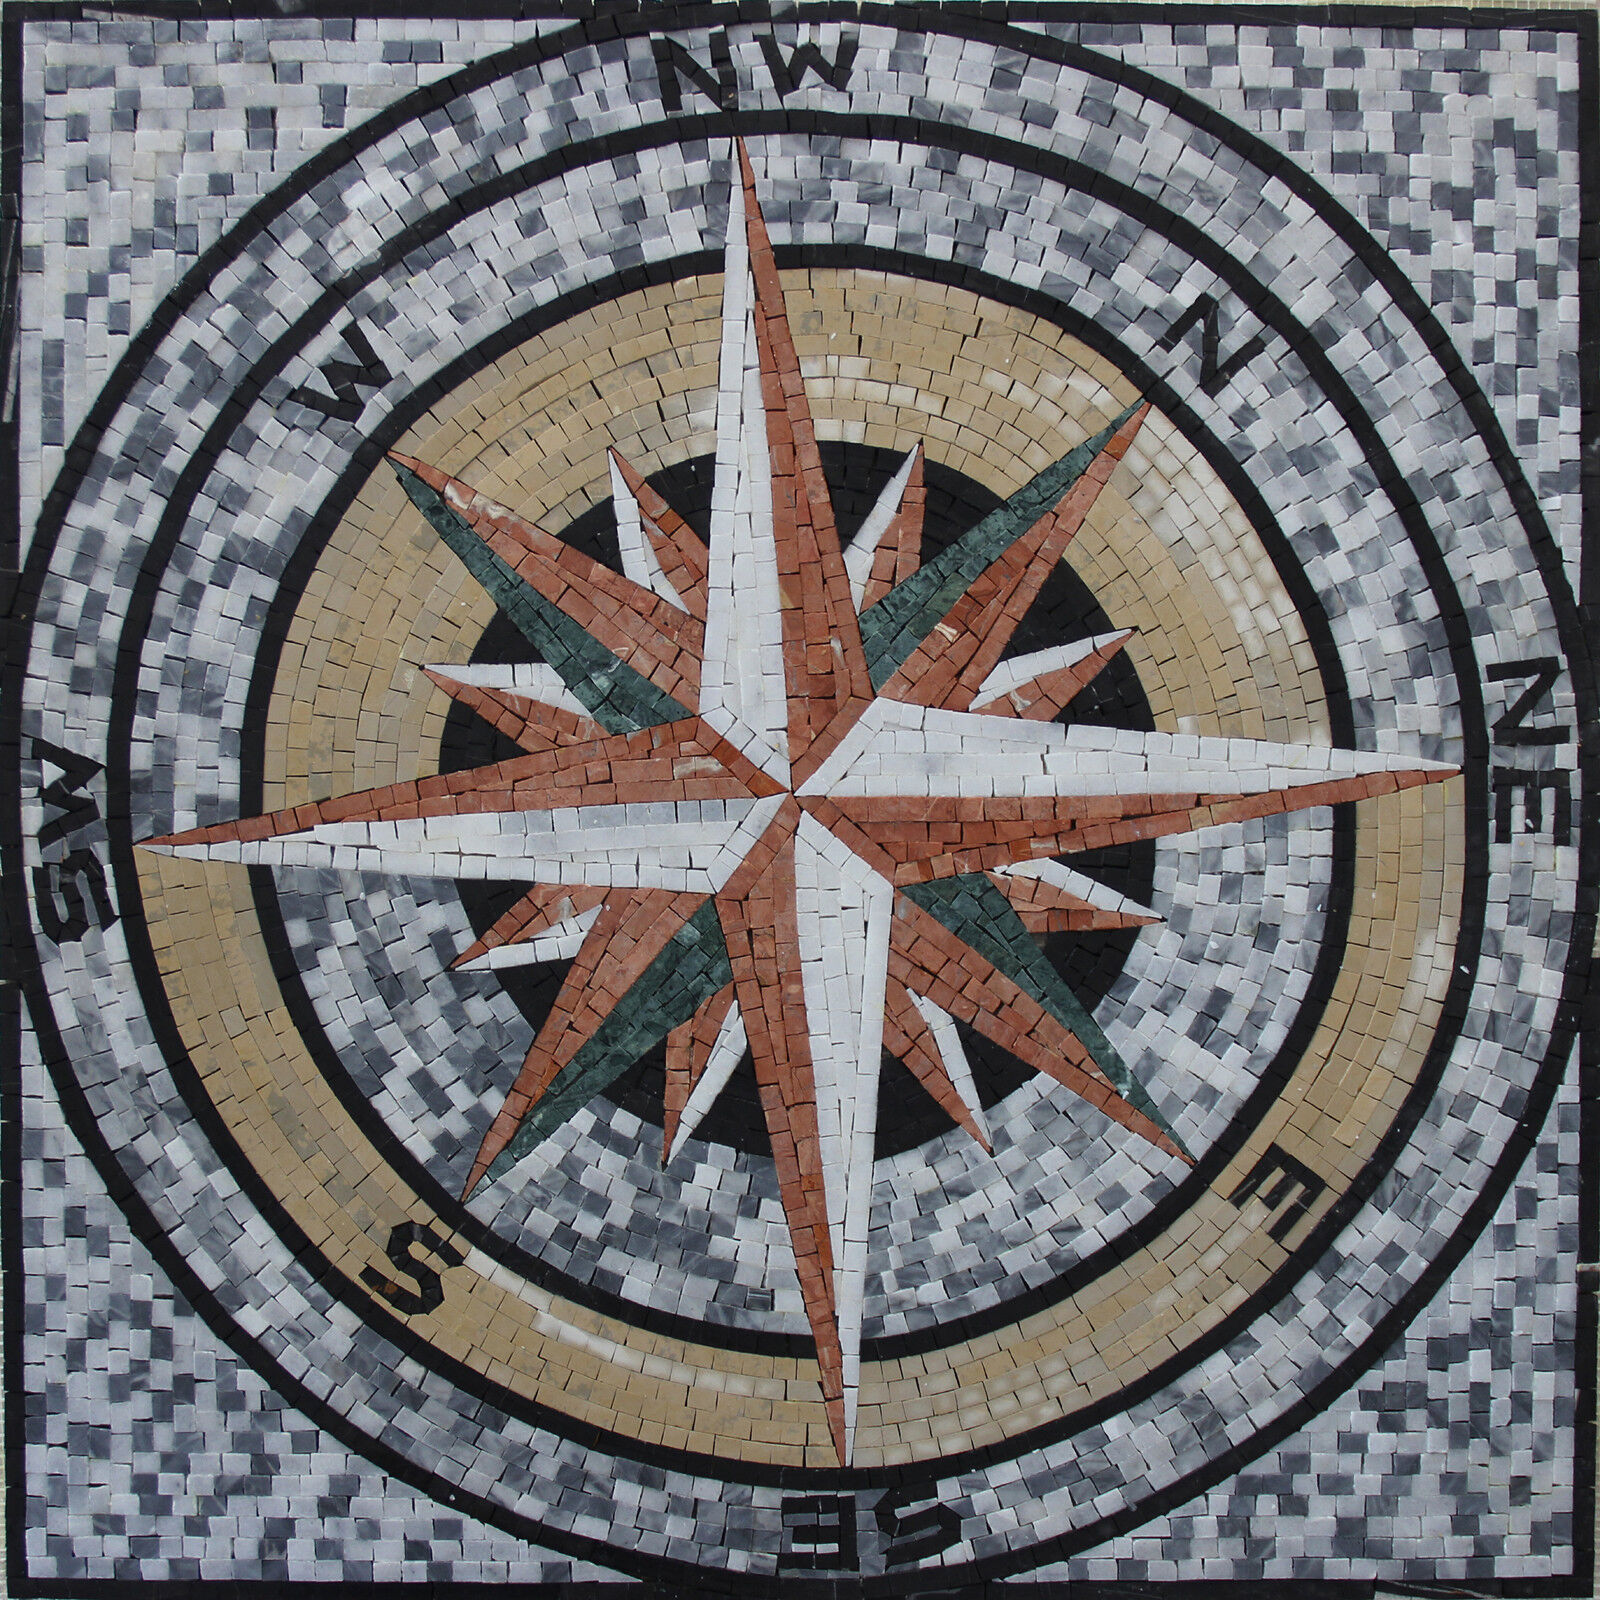 30 x30  Nautical Compass Home Navigation Marble Mosaic GEO2522